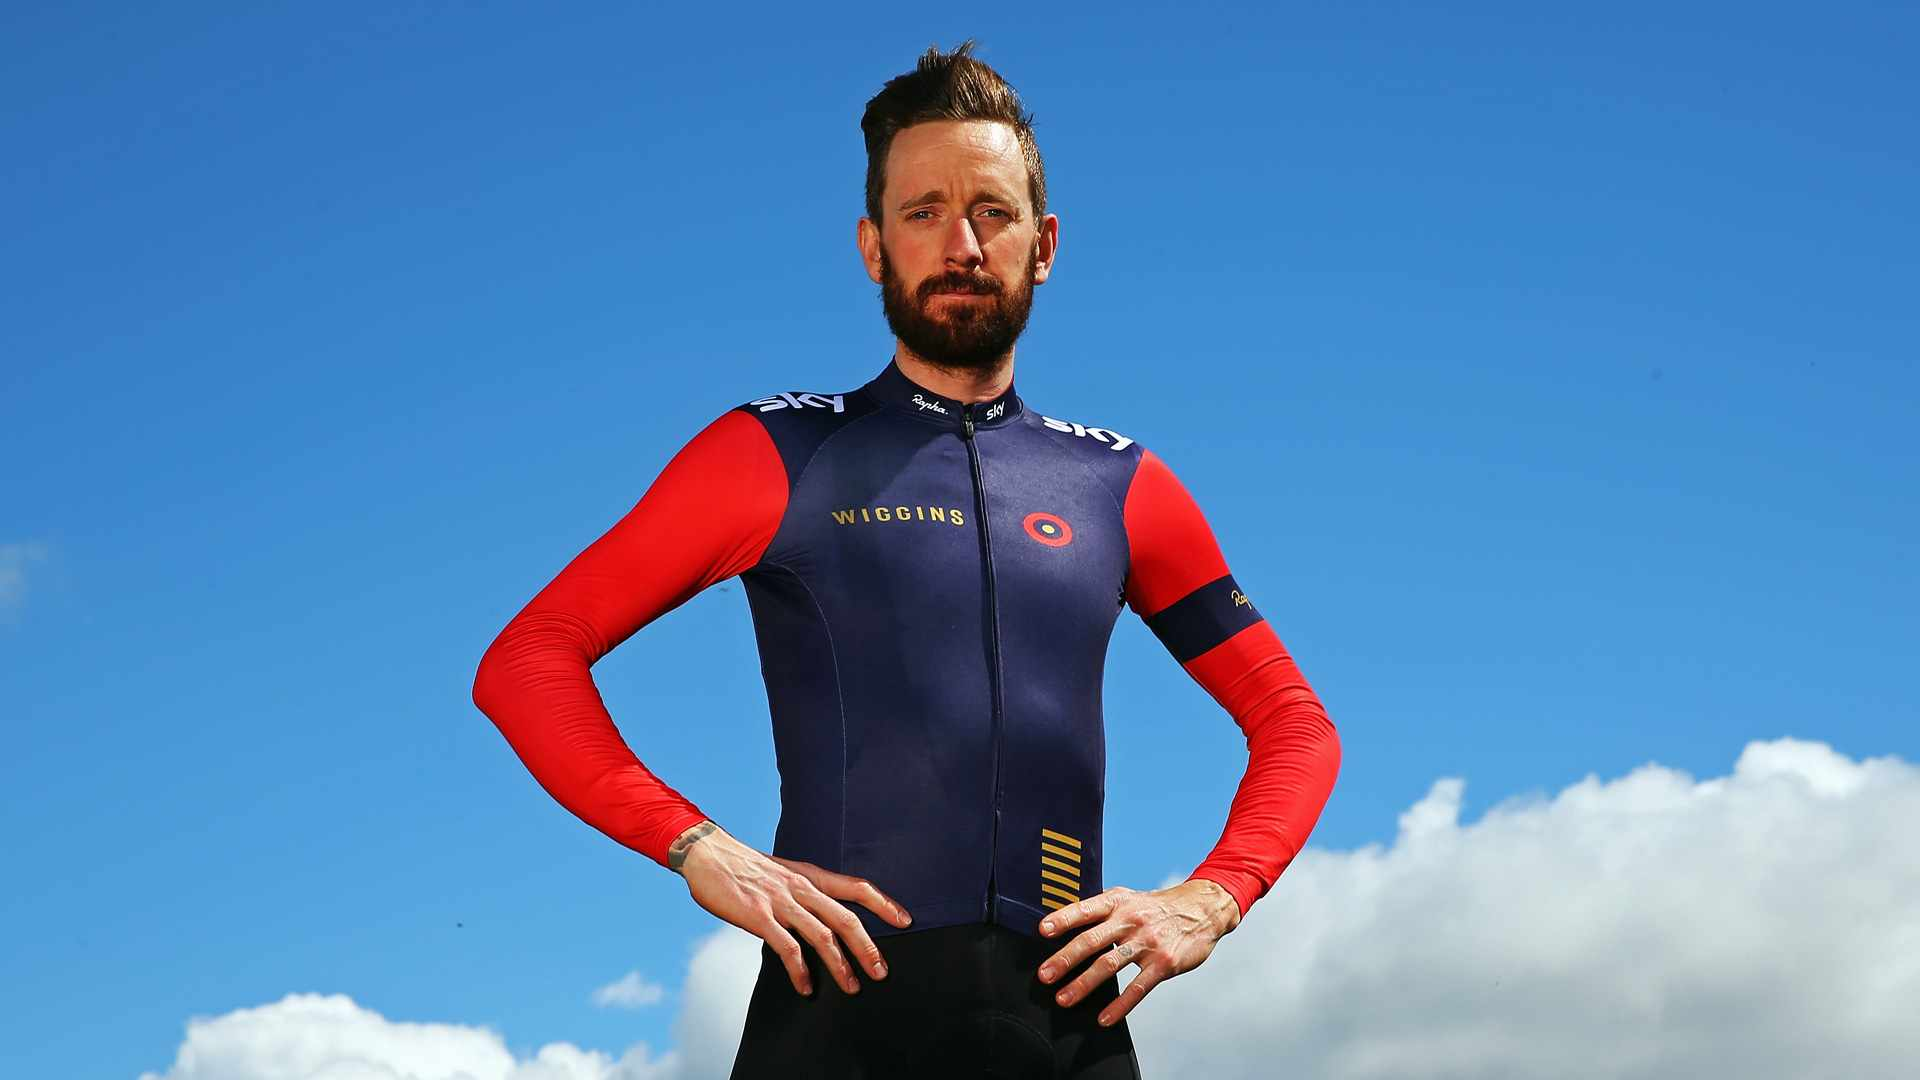 Sir Bradley Wiggins' Hour Record could result in free gels for 25,000 cyclists